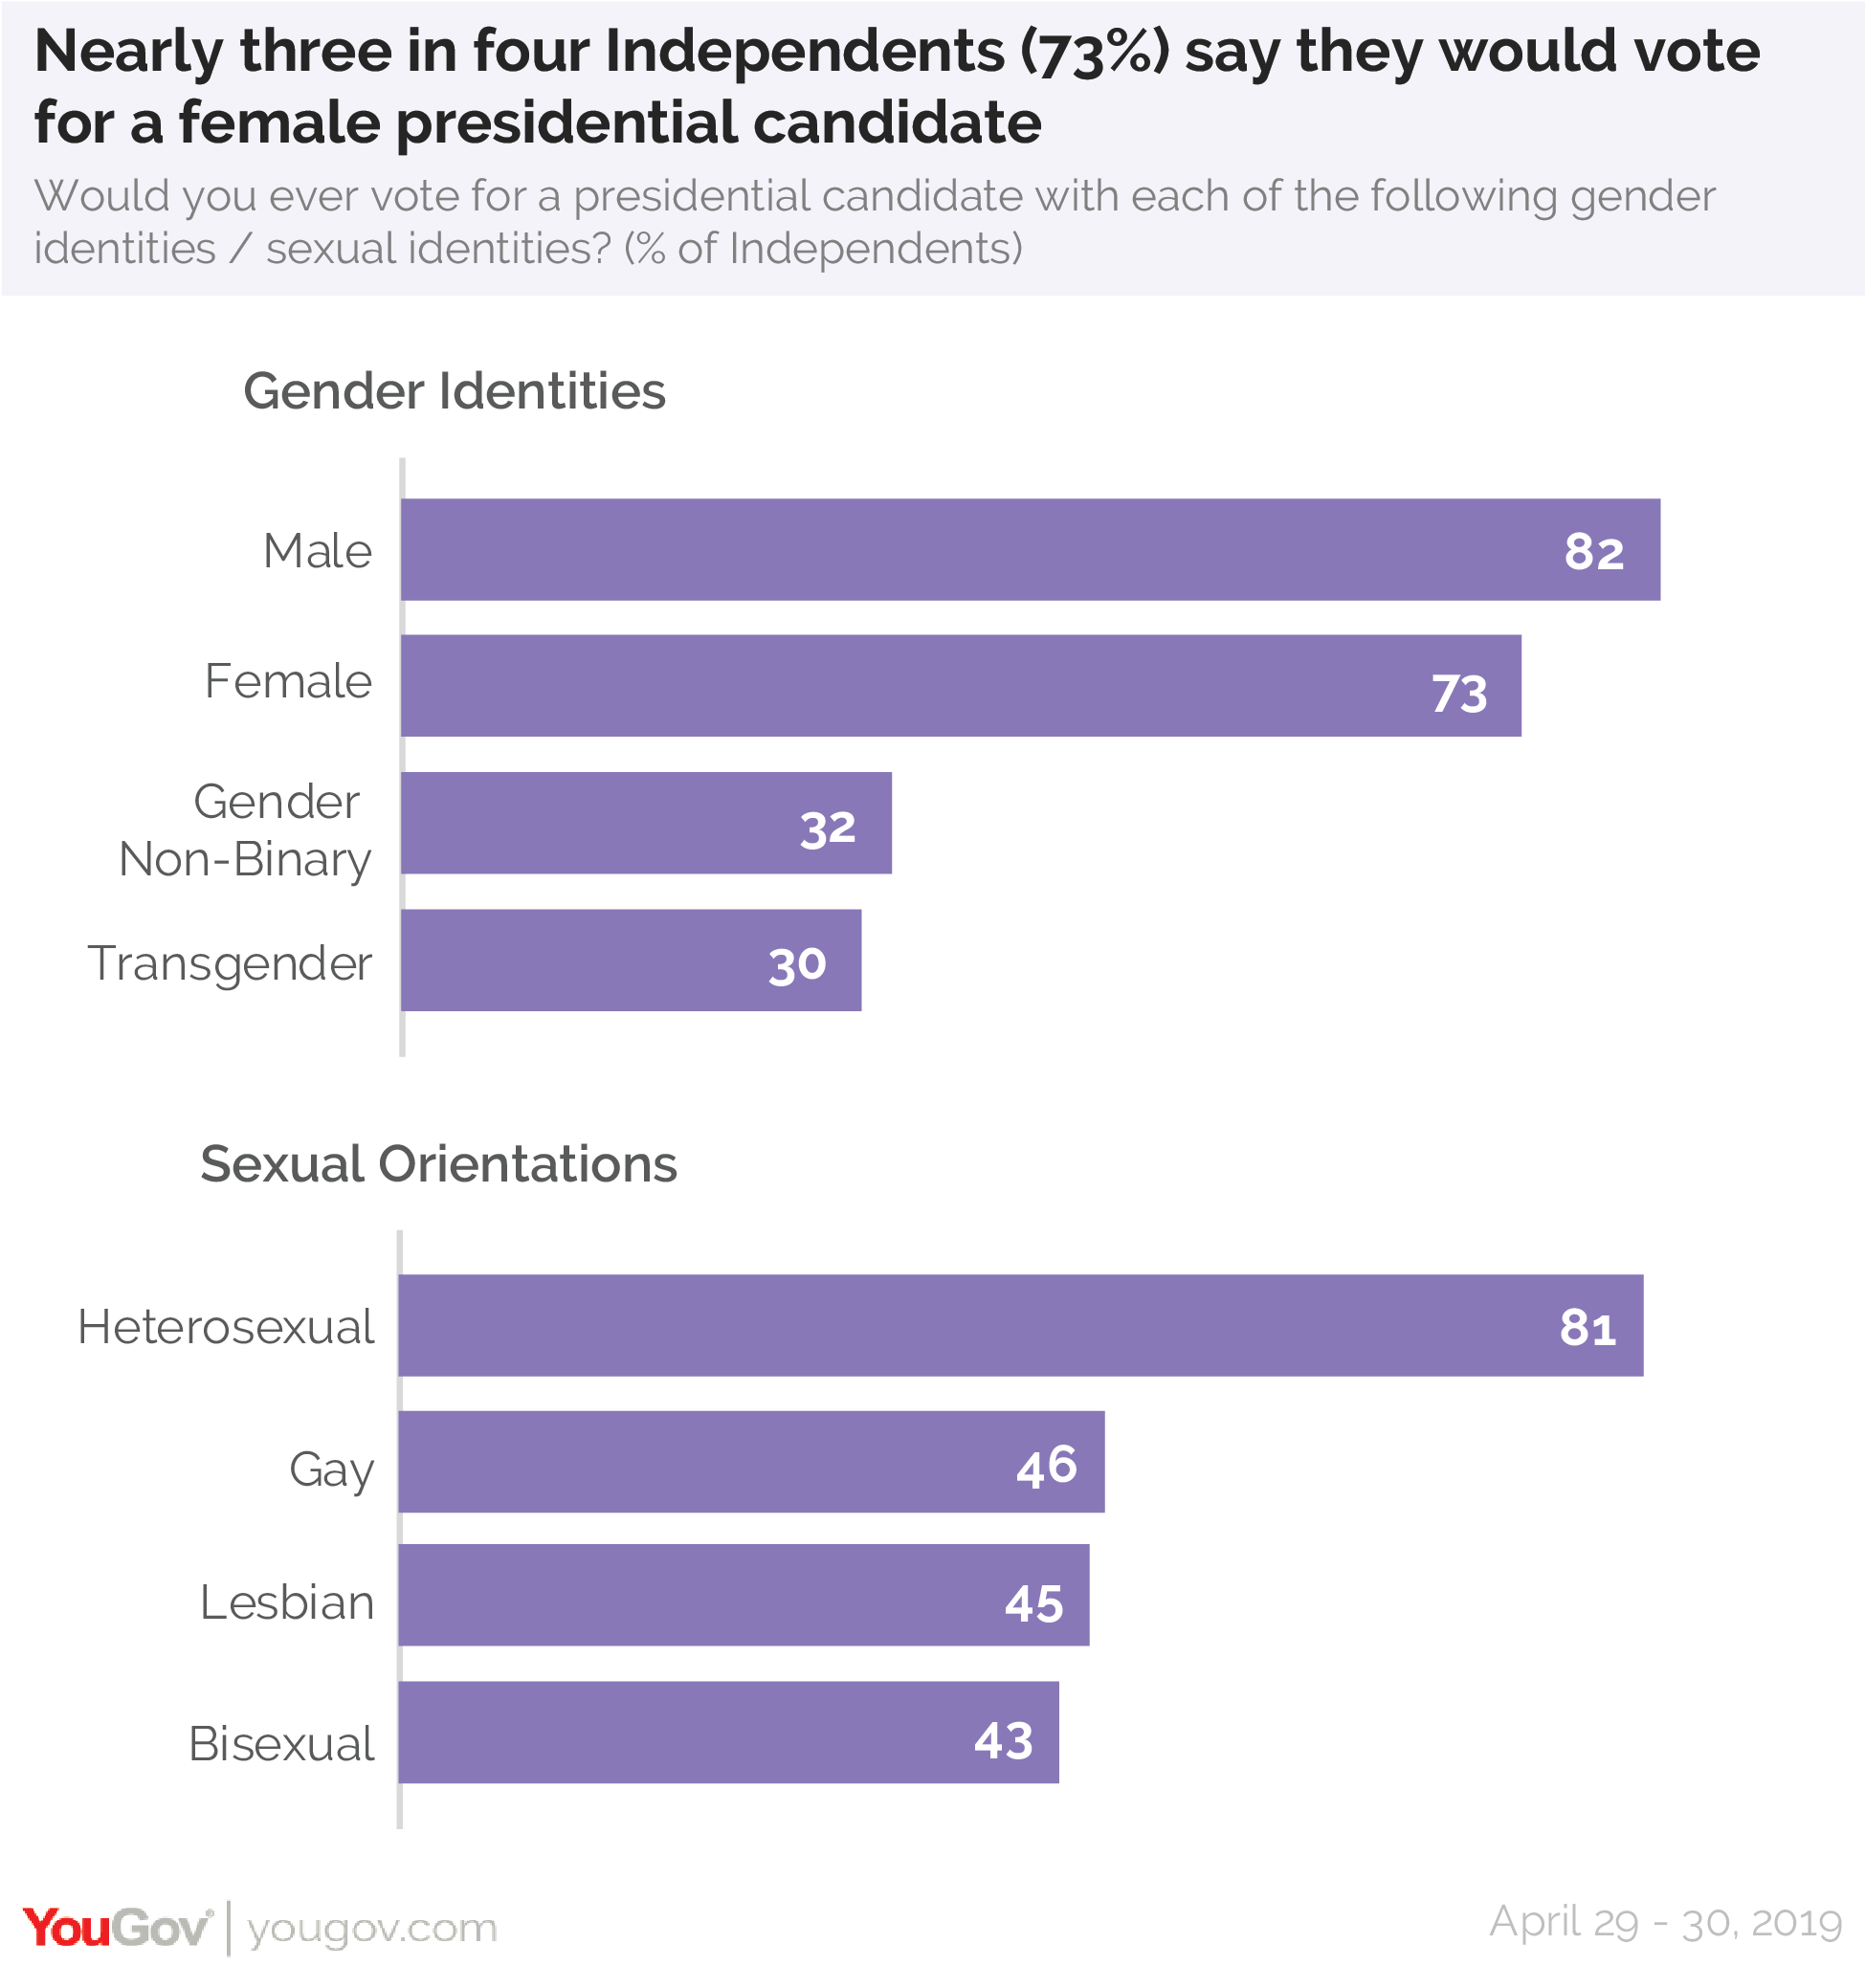 Nearly three in four Independents (73%) say they would vote for a female presidential candidate